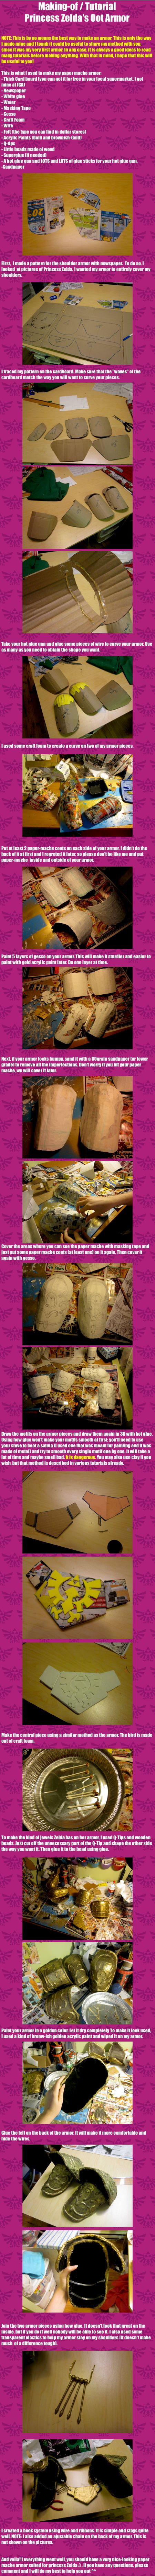 Making-of / Tutorial of Princess Zelda's OoT armor by ~Kisshu-Neko on deviantART (Great tutorial for making armor with papier-mâché!)